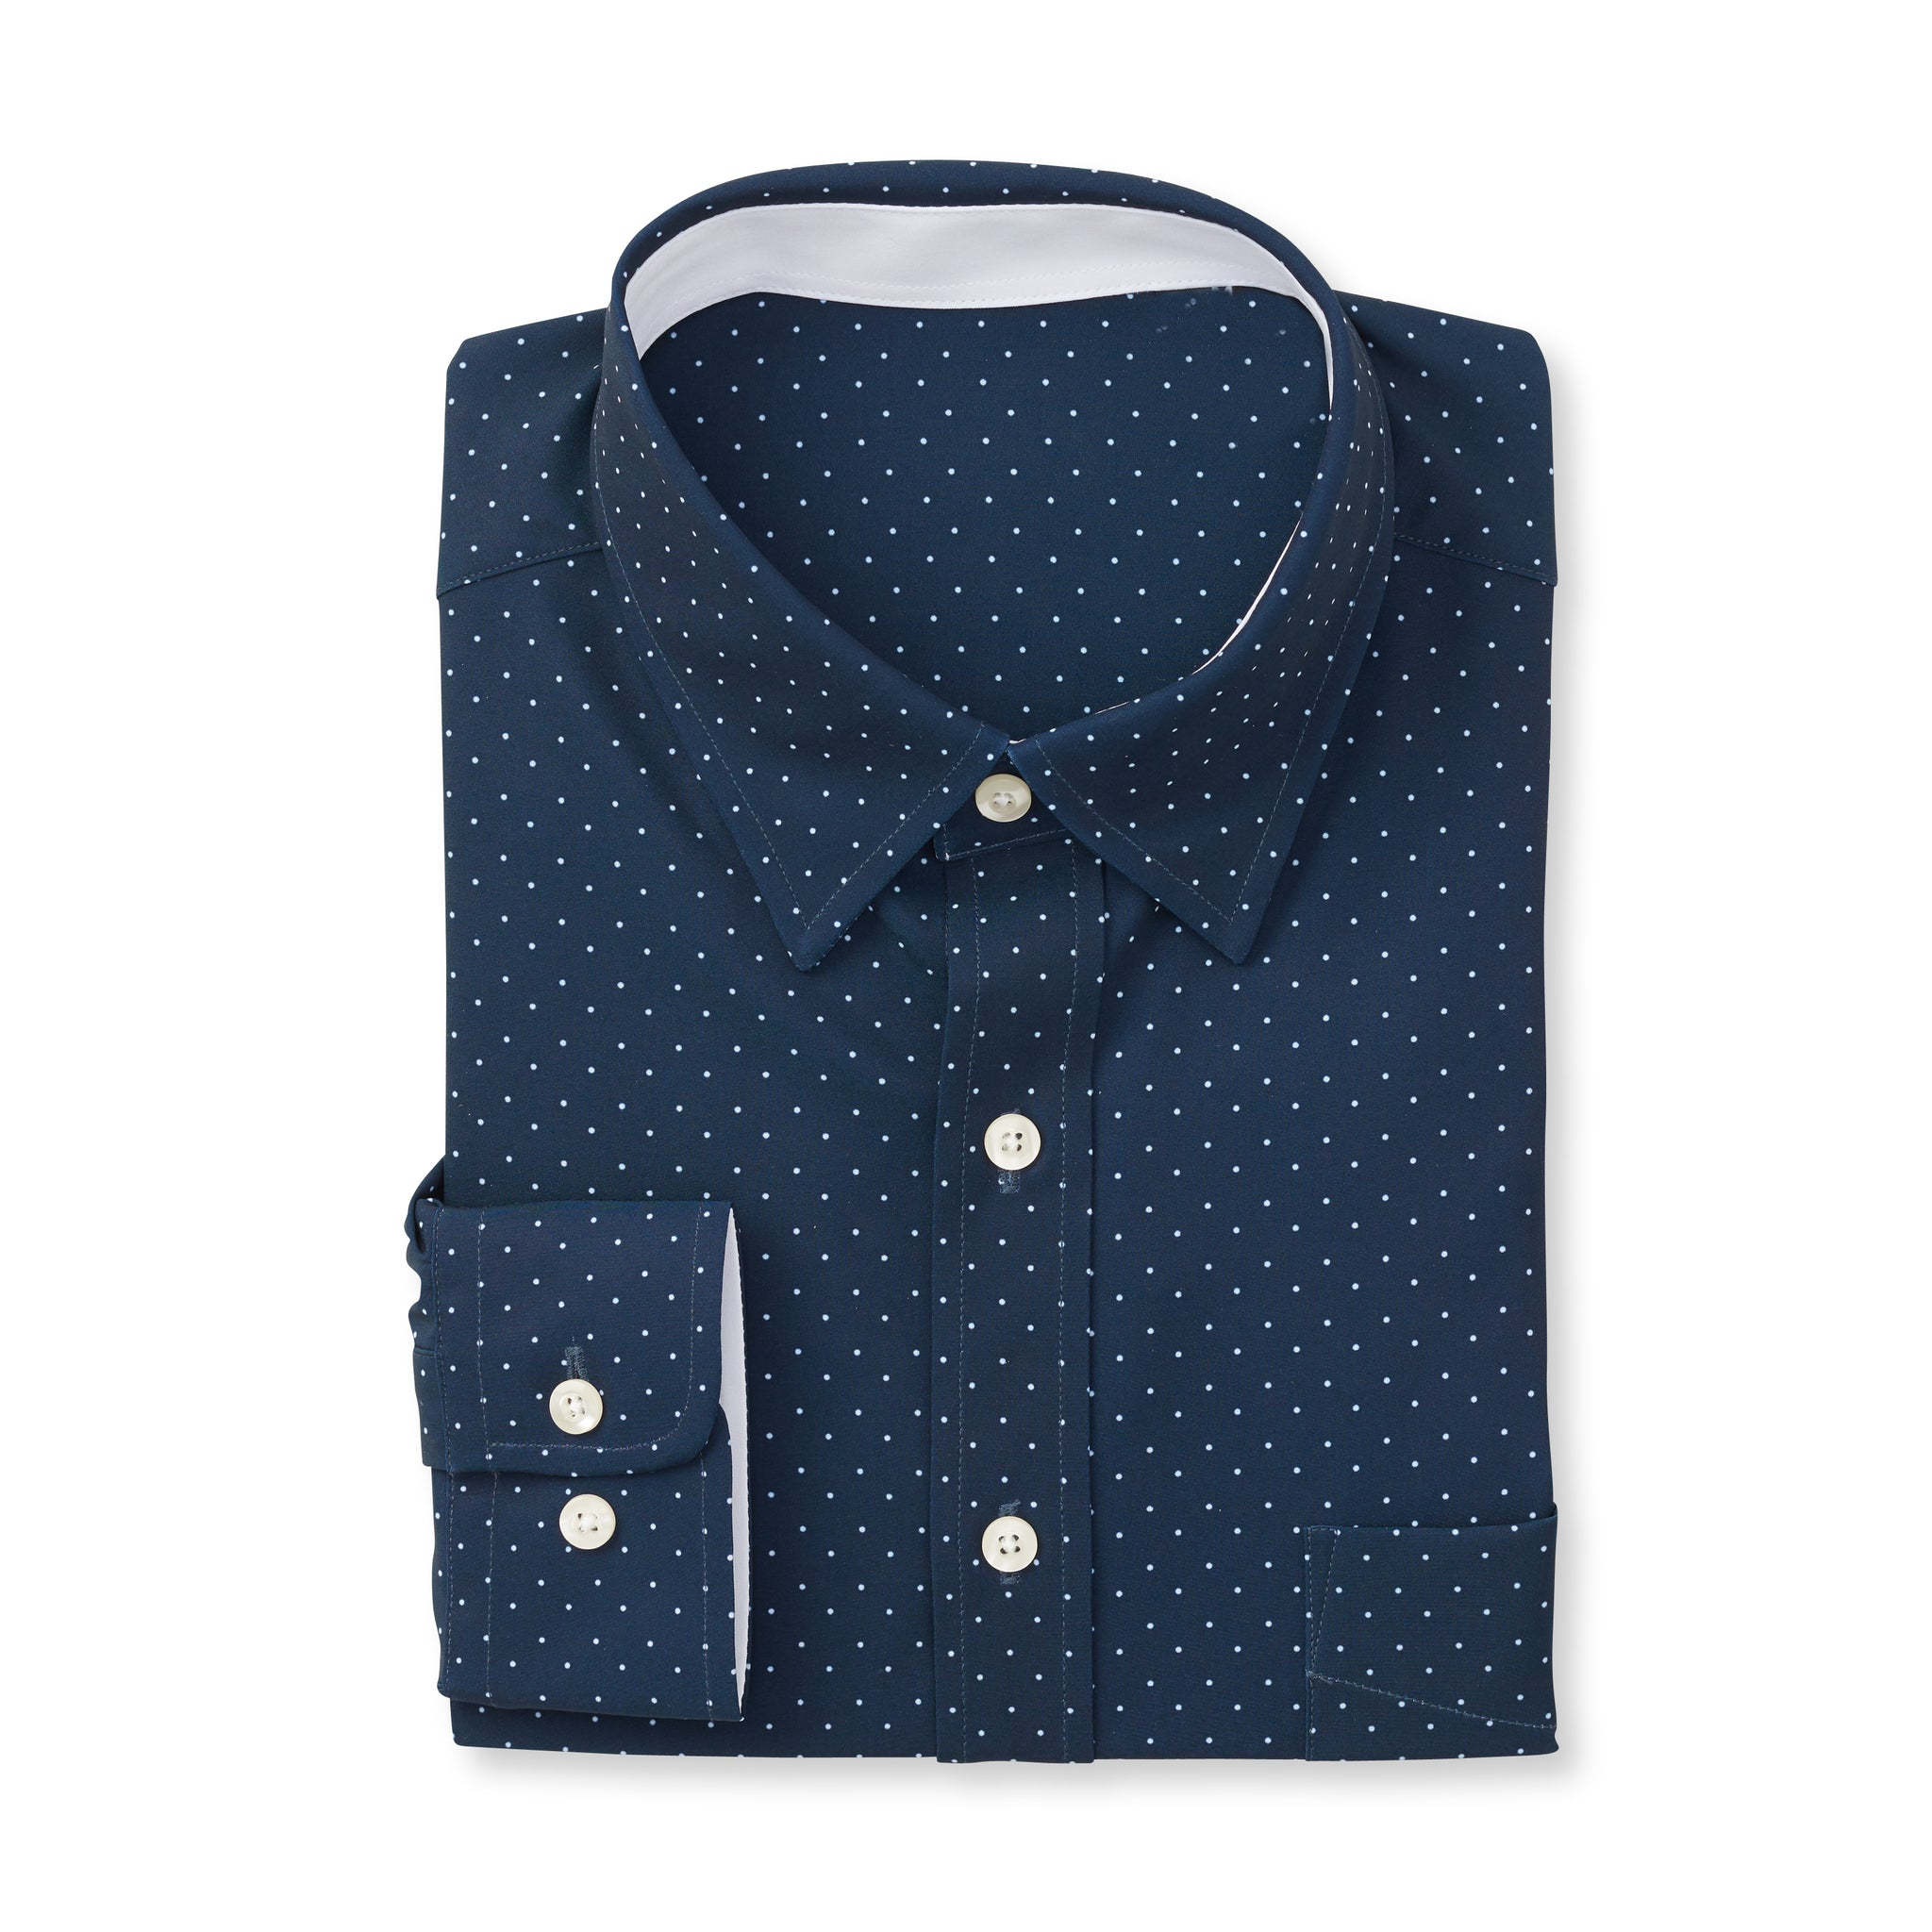 ECOTEC Dot Print Sport Shirt - IS92311 Navy